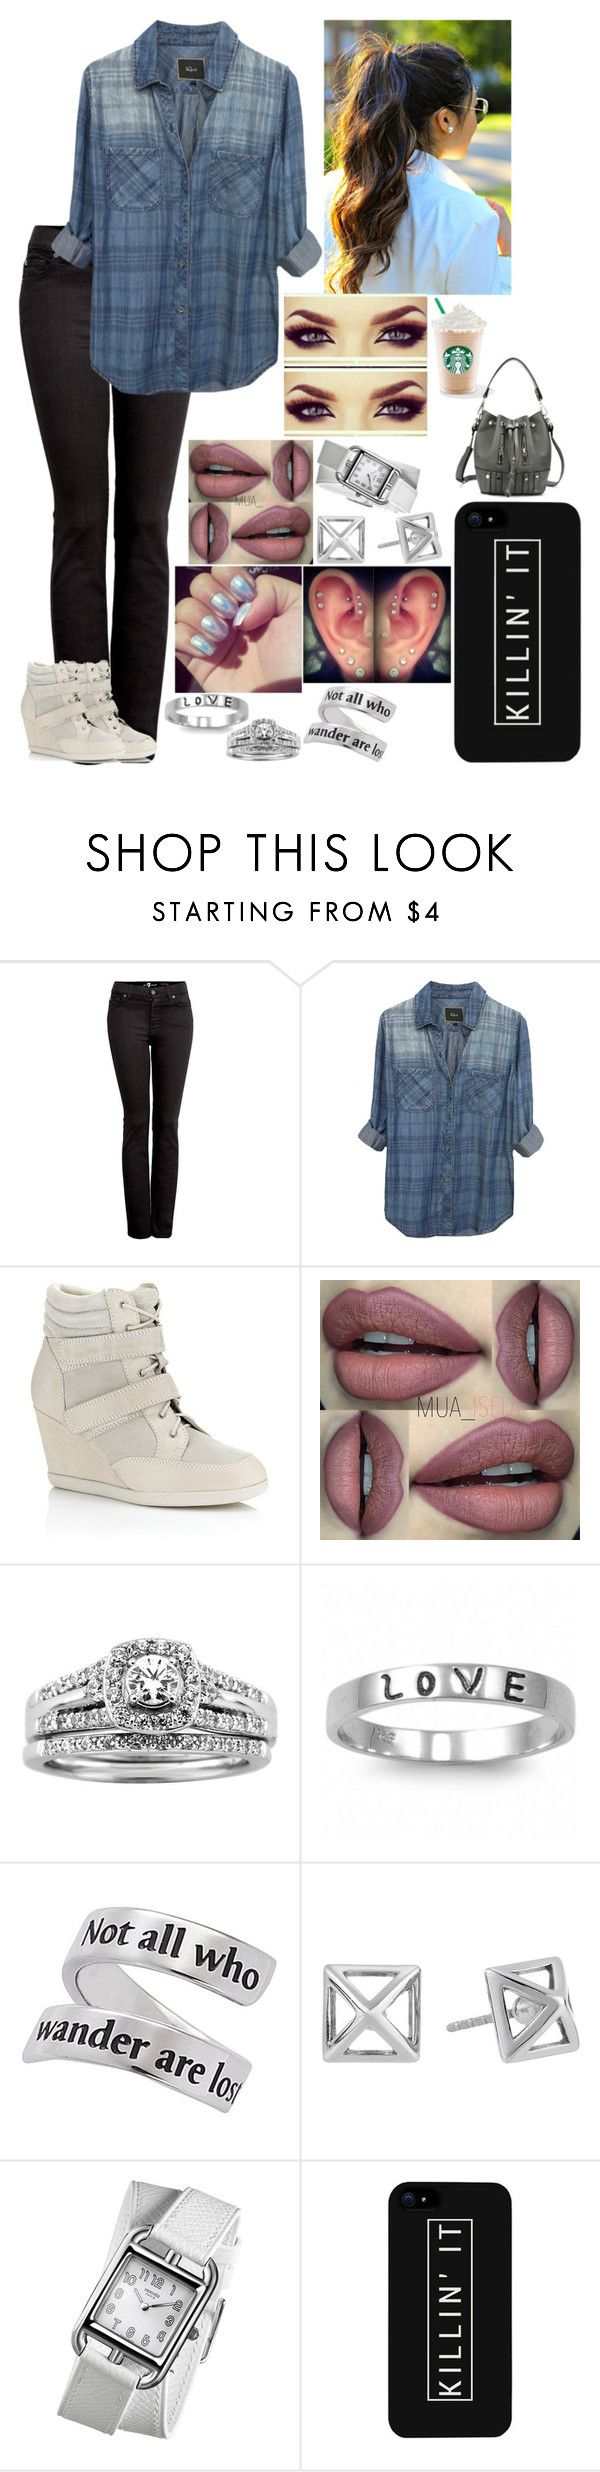 """""""Untitled #2996 - Outfit of the Day - 11/12/16"""" by nicolerunnels ❤ liked on Polyvore featuring 7 For All Mankind, Rails, Carvela Kurt Geiger, A.Jaffe, Fantasy Jewelry Box, Rebecca Minkoff, J.A.K., Hermès and LG"""